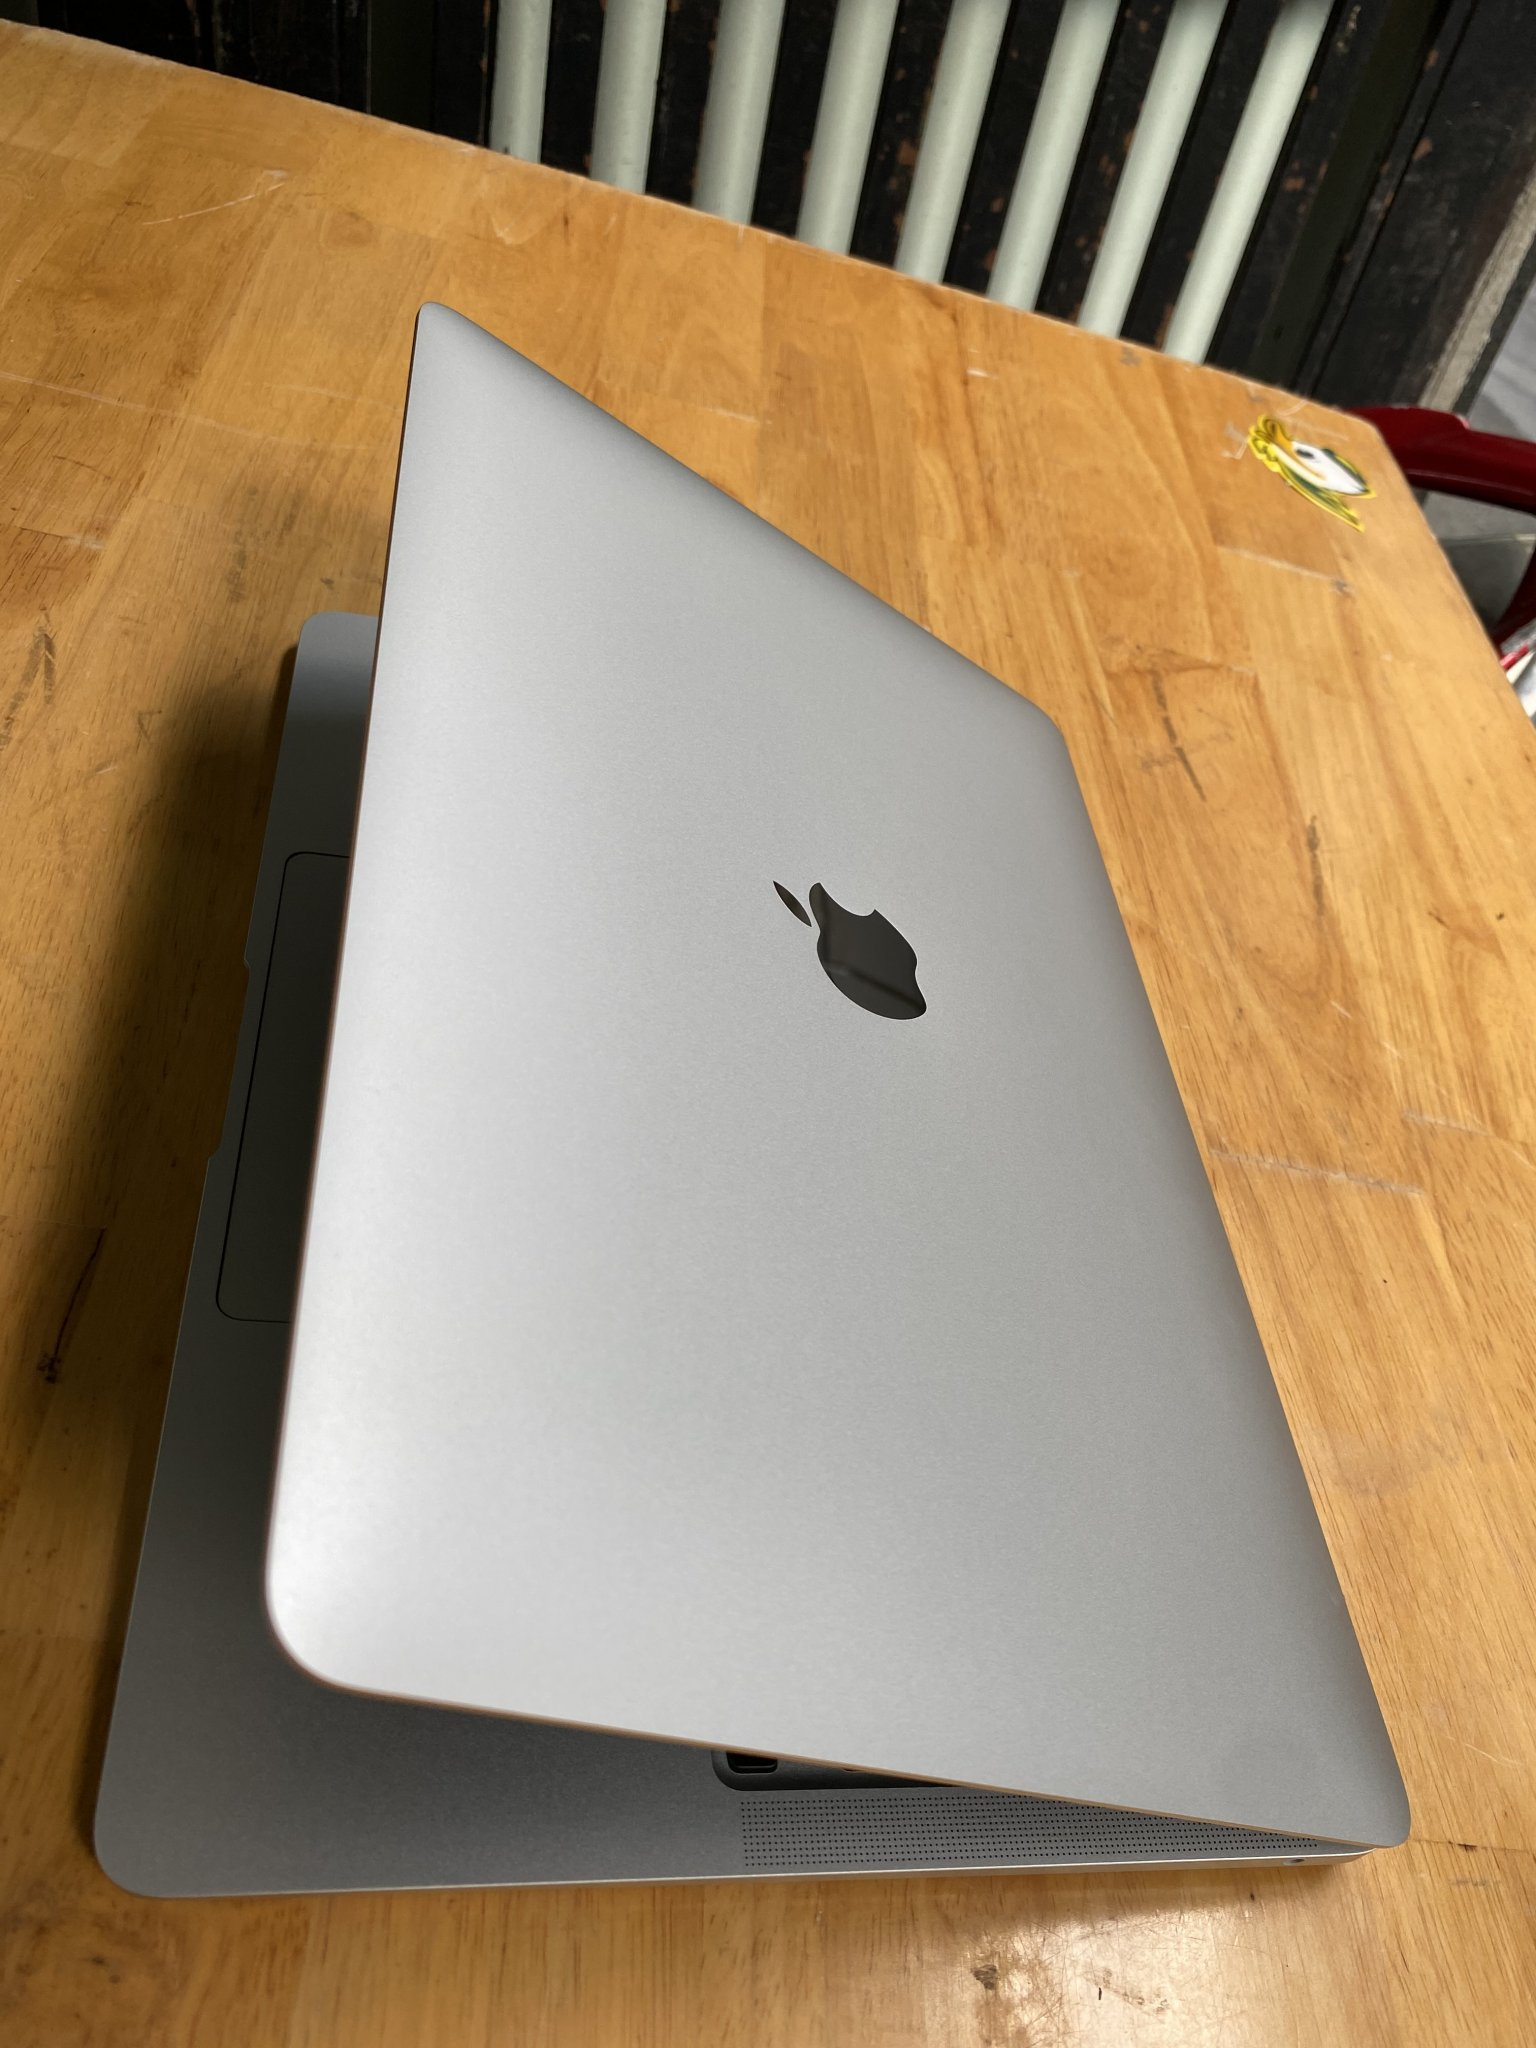 macbook air 2020 i7 new (6).JPG